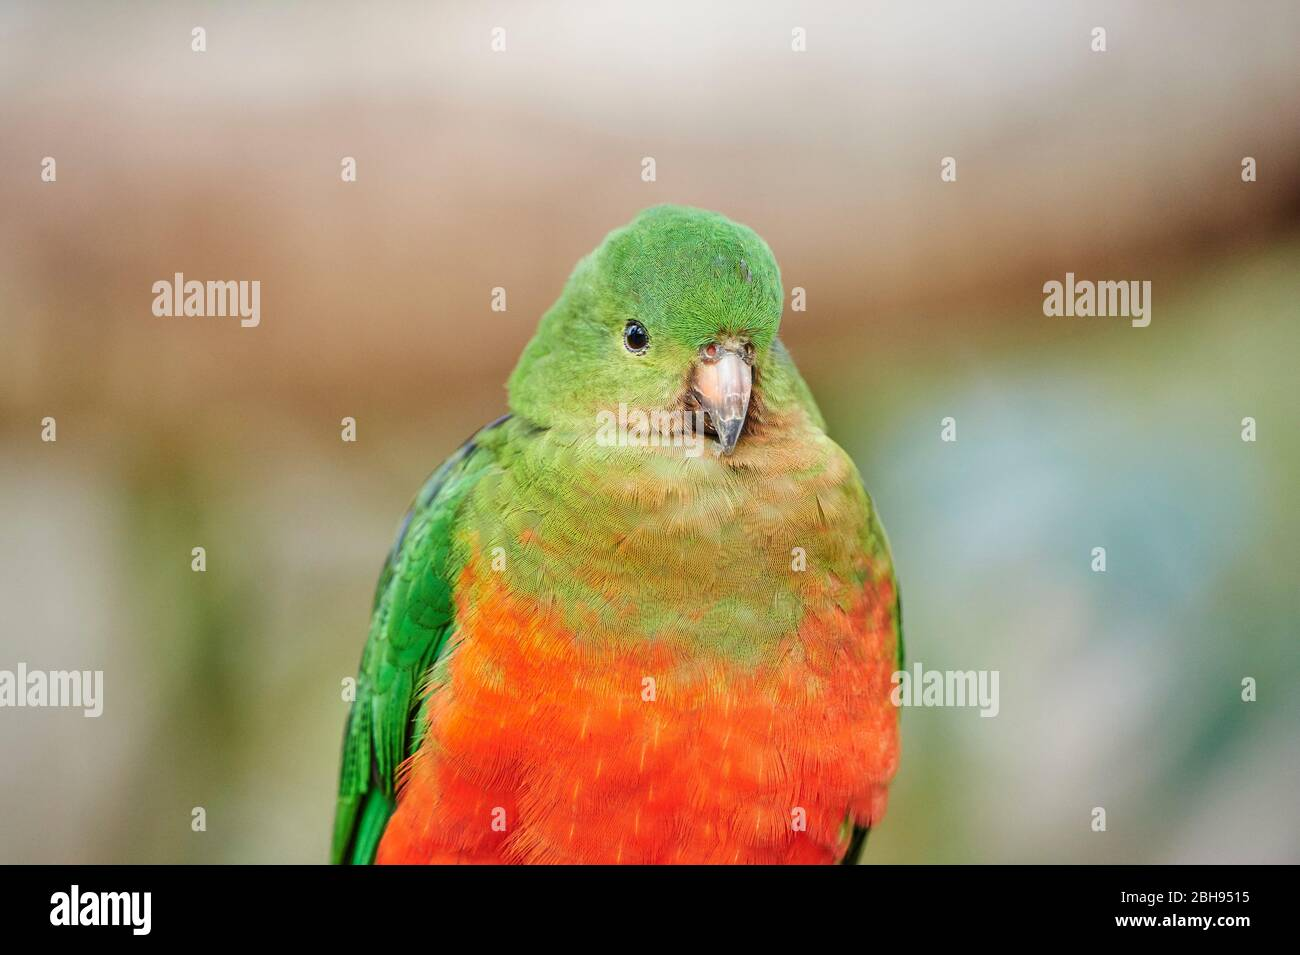 Australian king parrot (Alisterus scapularis), female, head-on, sitting, looking at camera Stock Photo